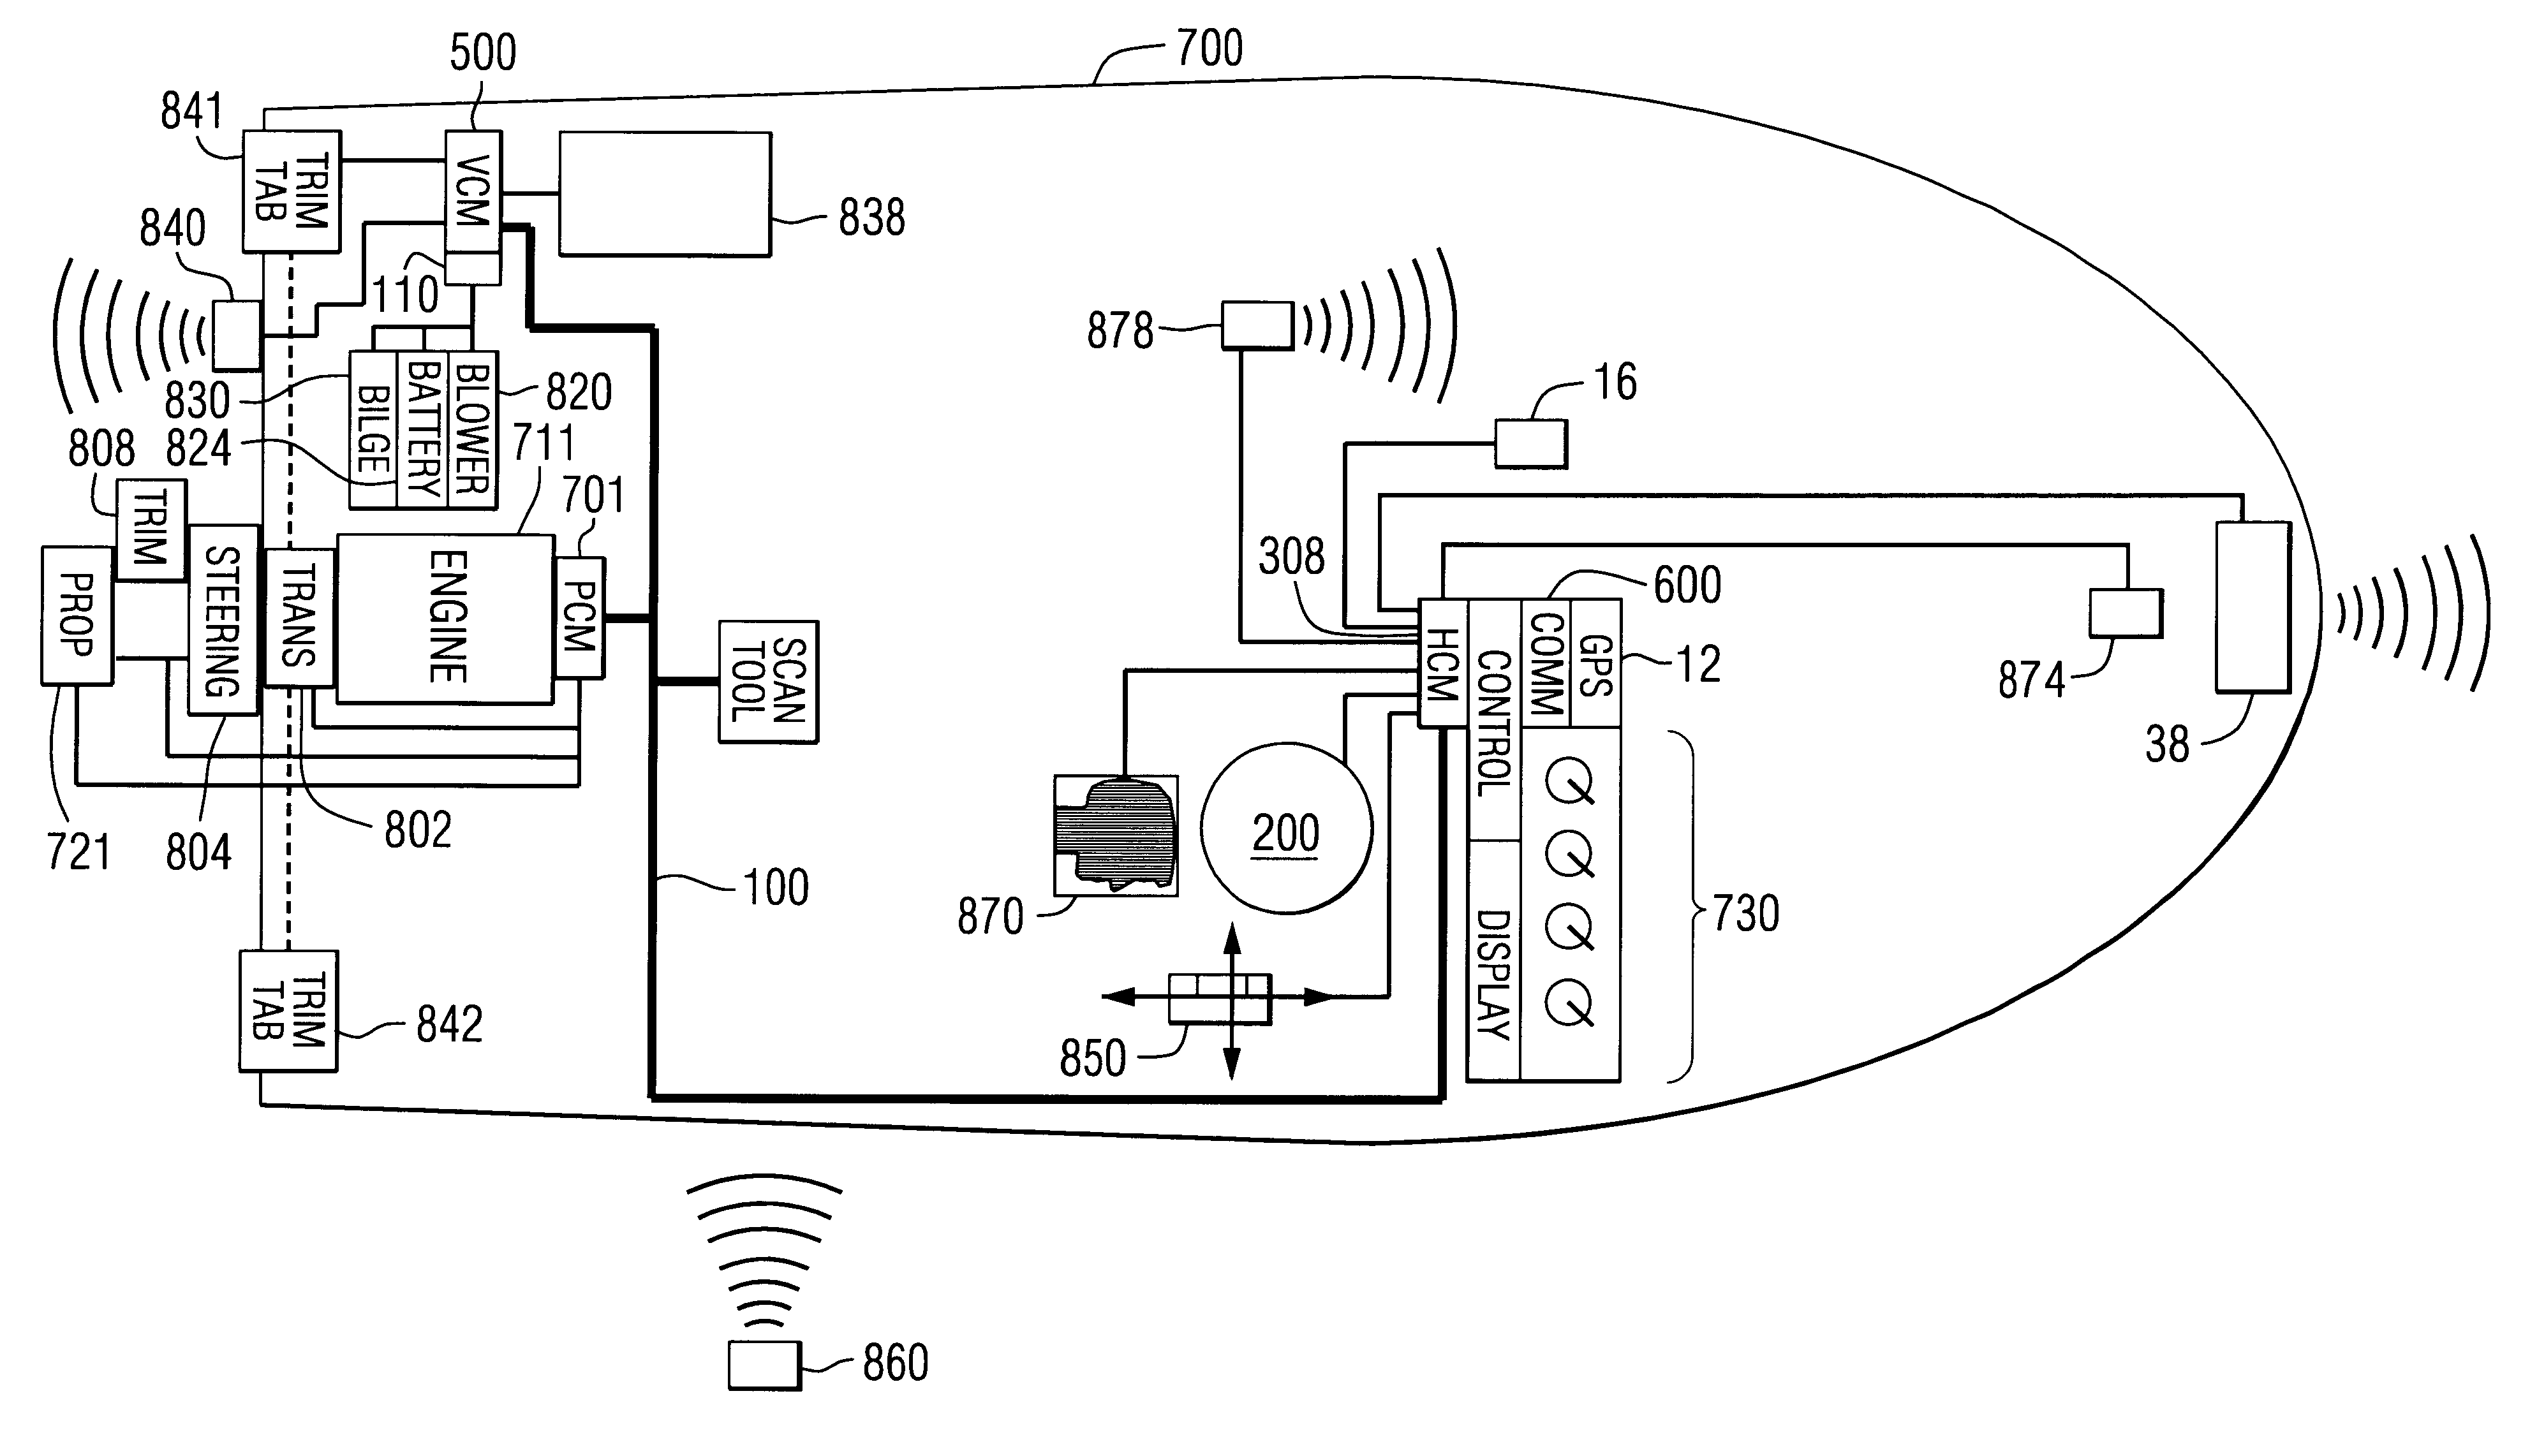 Analytics for US Patent No. 6273771, Control system for a marine vessel